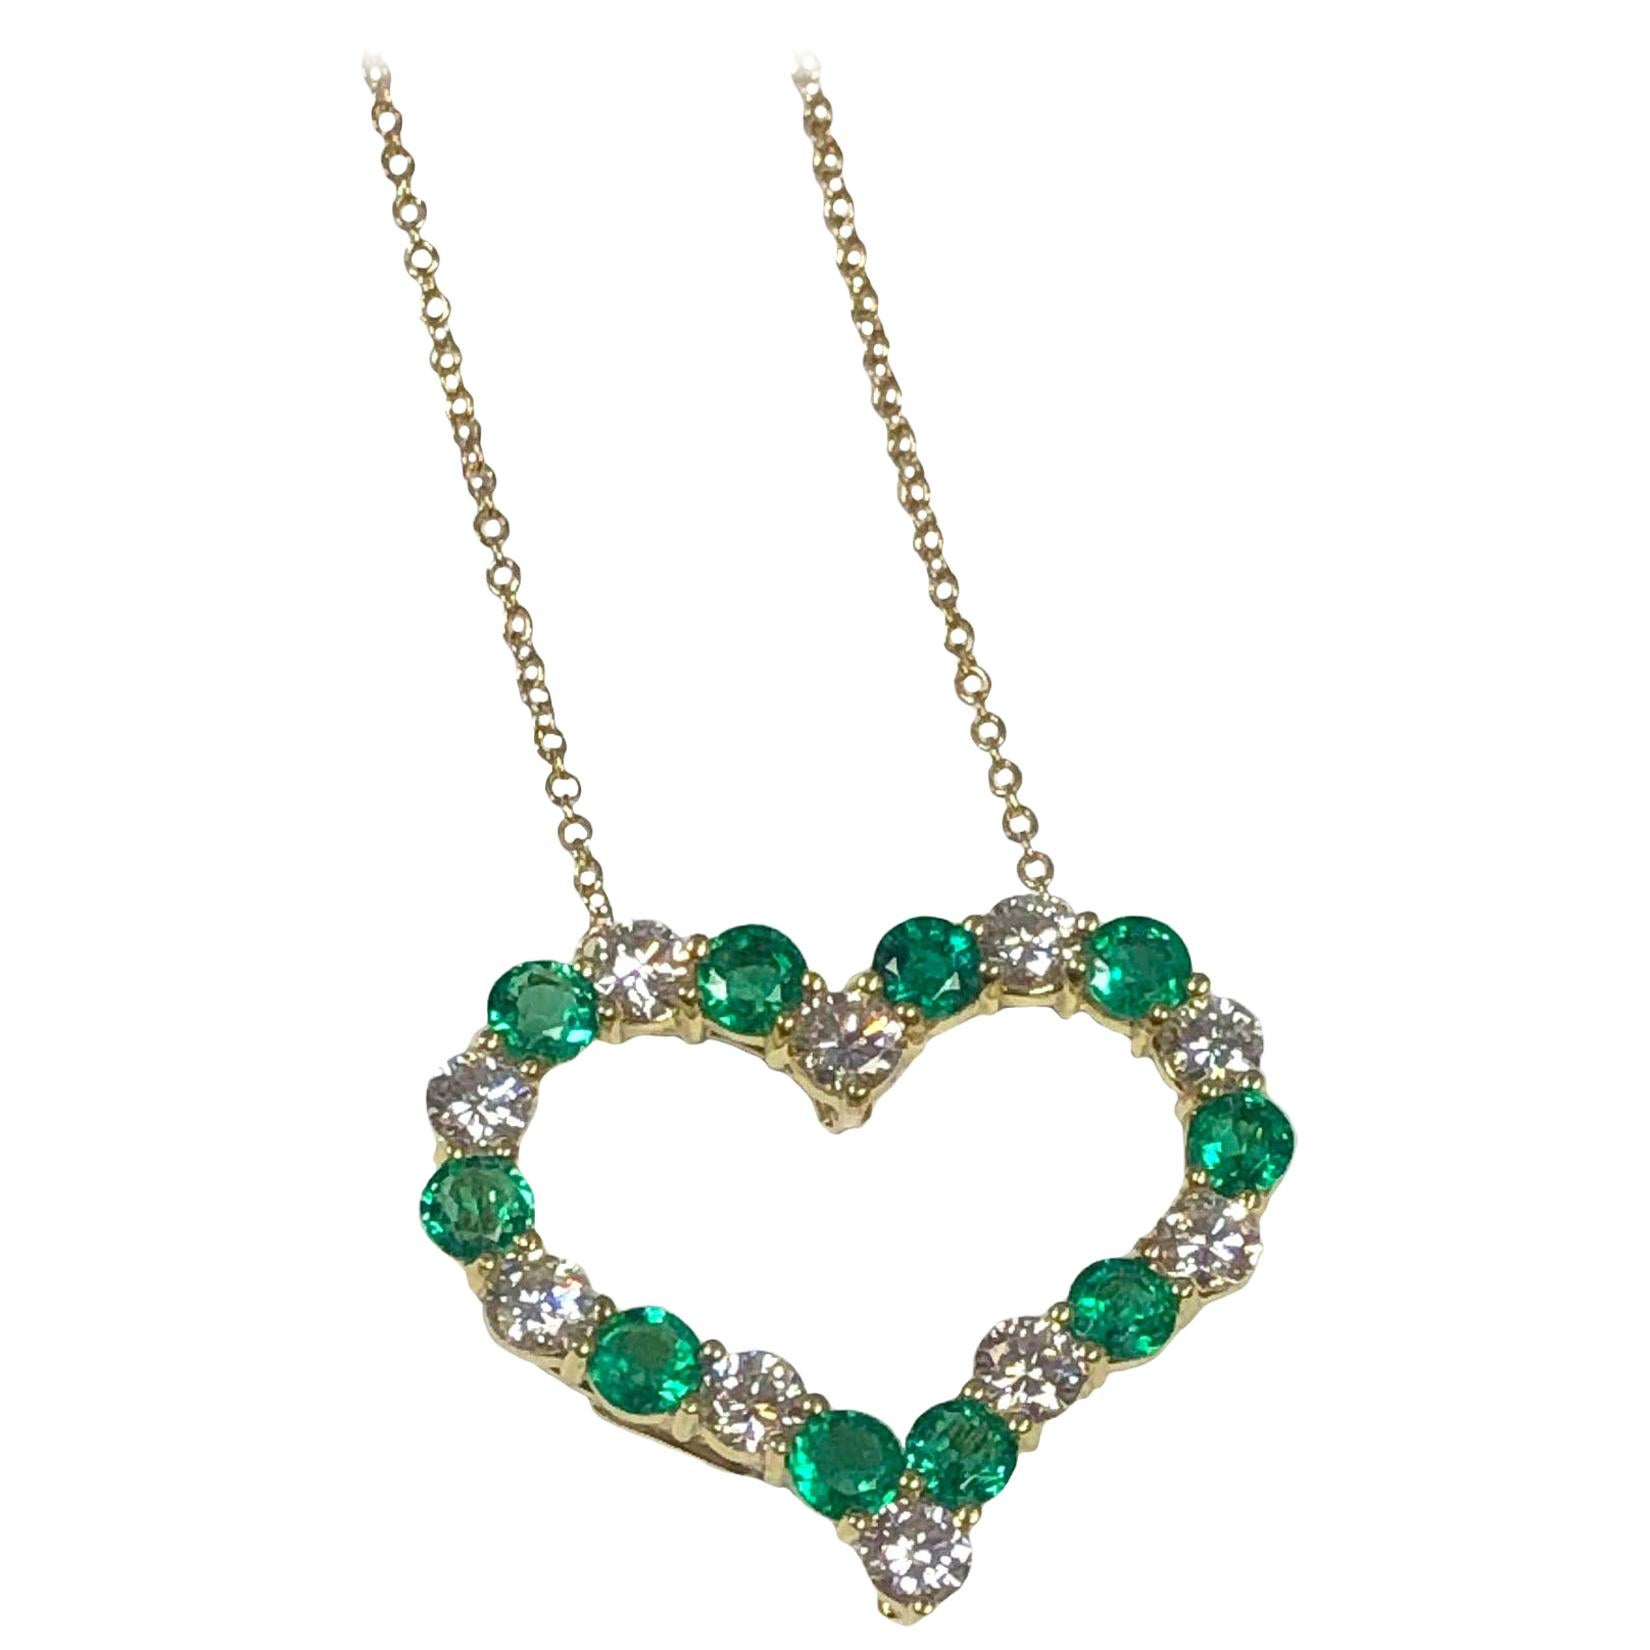 Tiffany & Co Yellow Gold Diamond and Emerald Heart Pendant Necklace